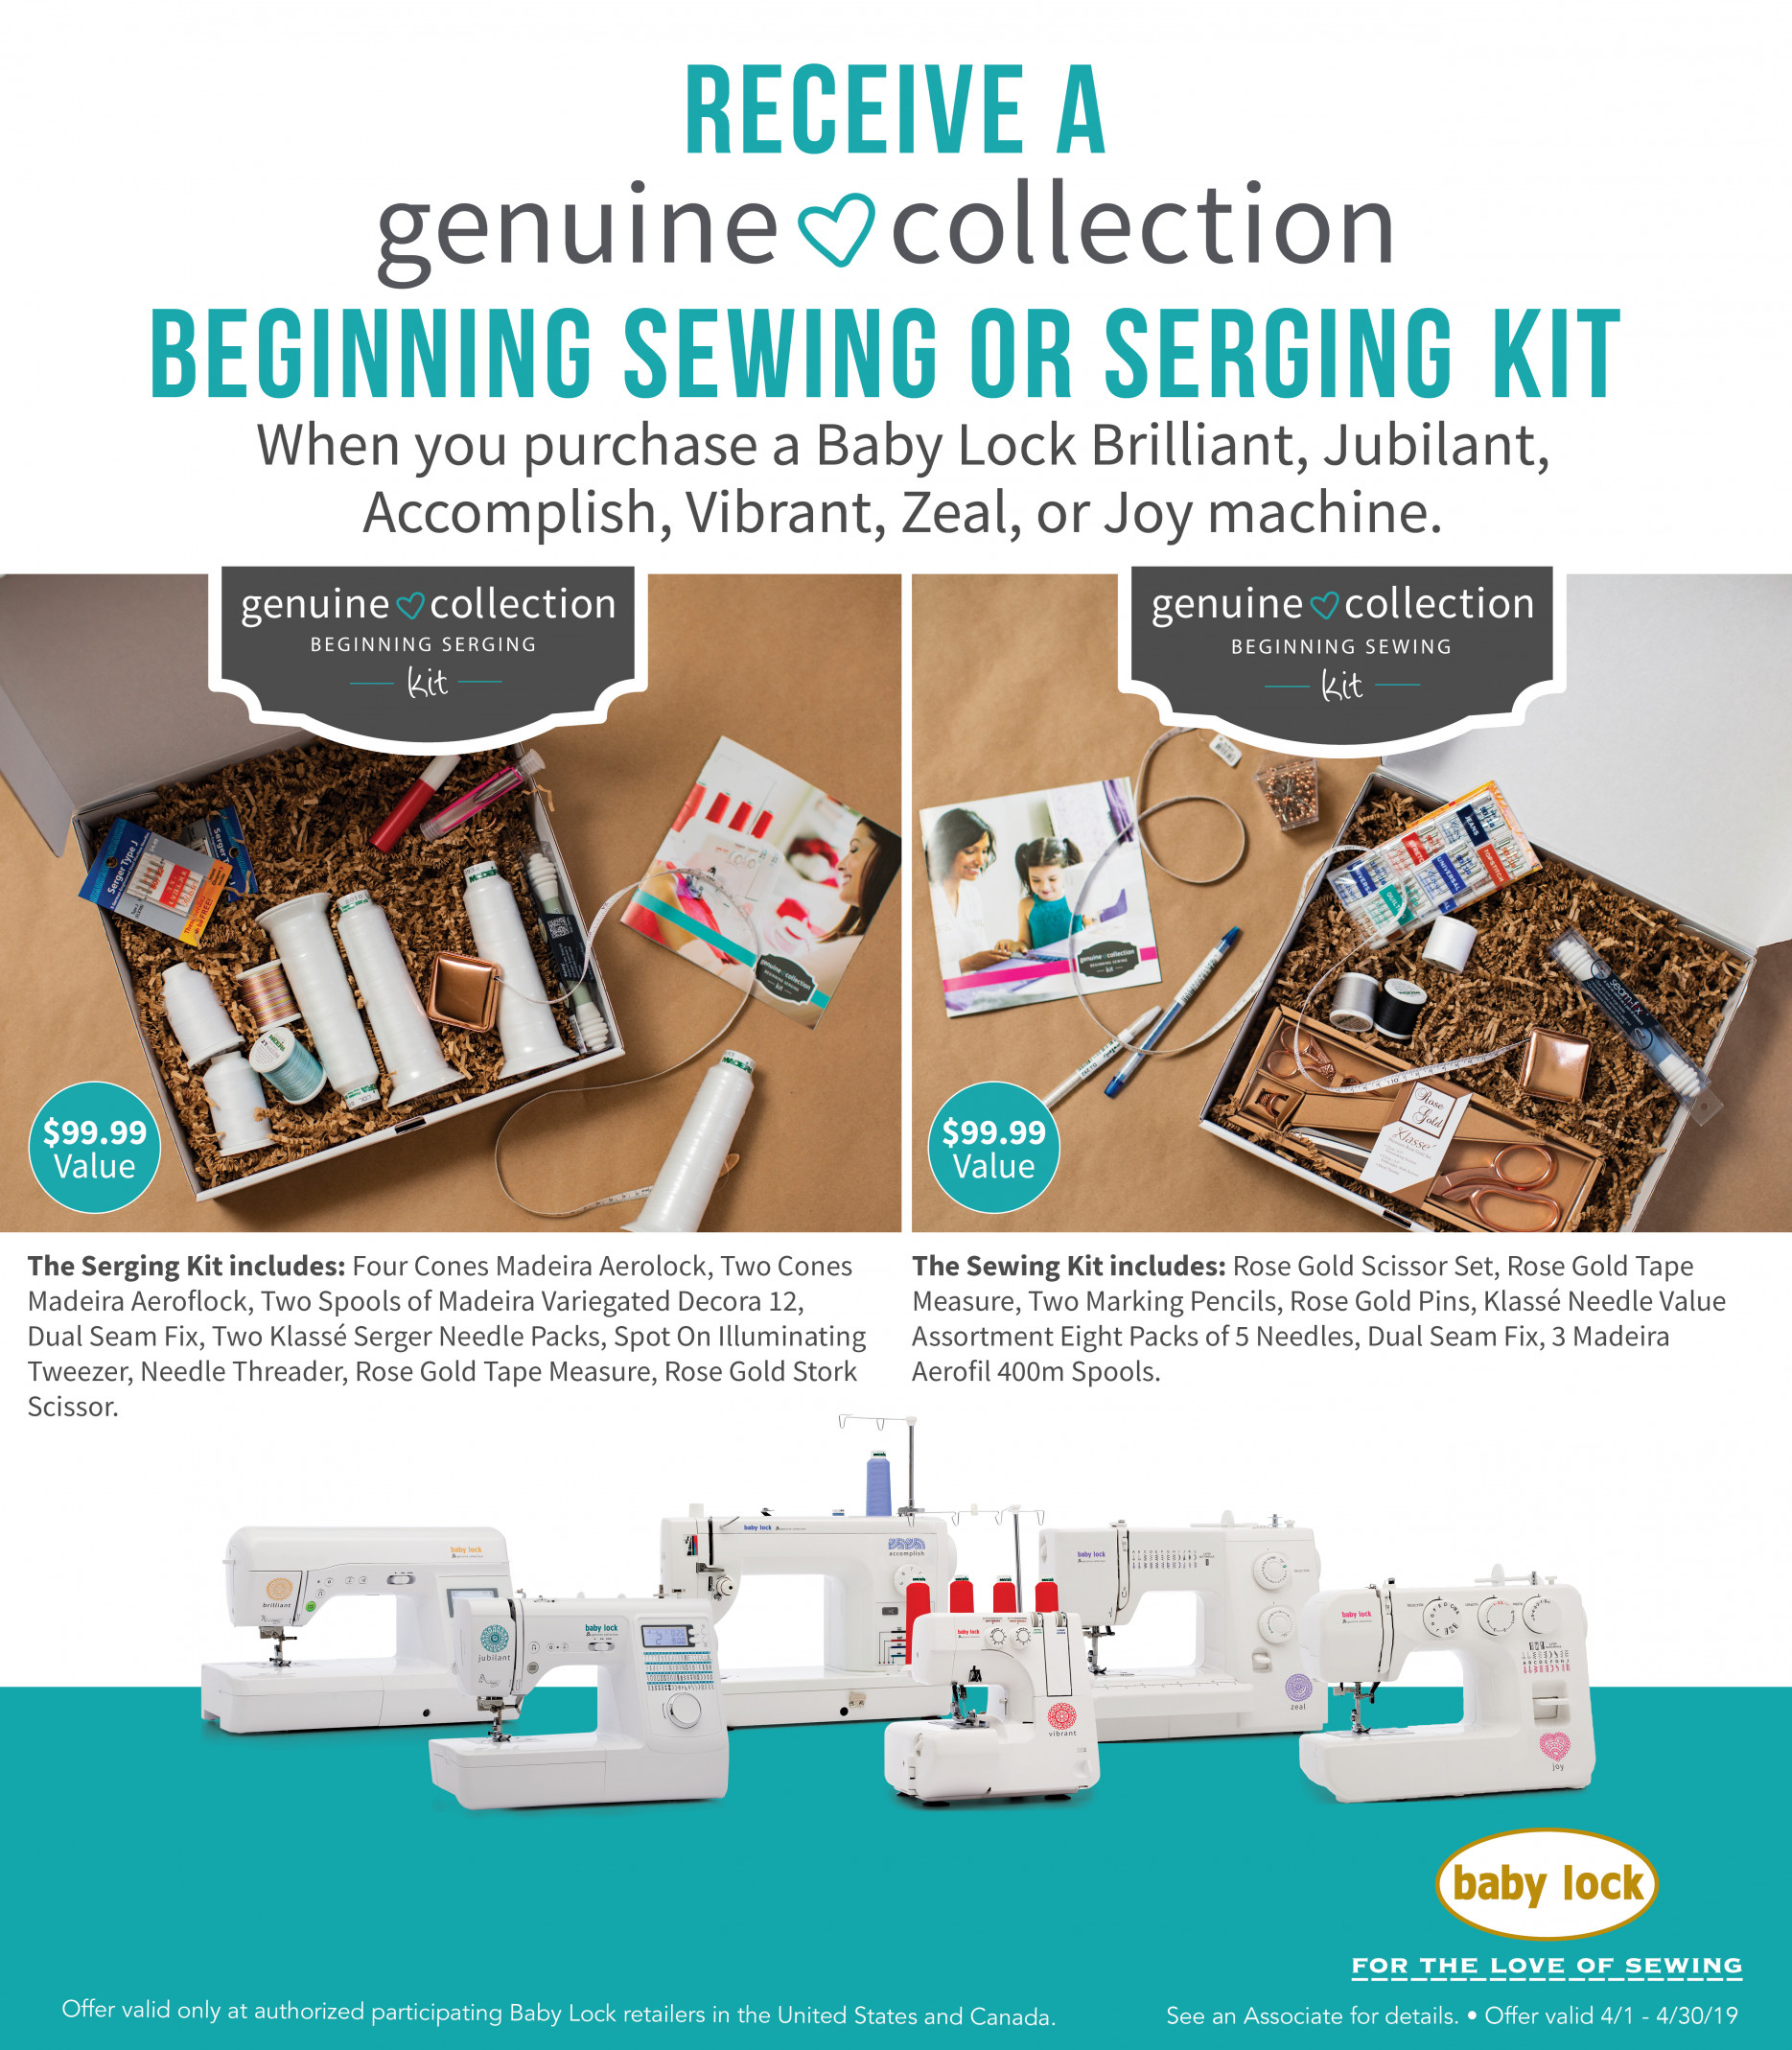 Baby Lock's Genuine Collection consists of a line-up of sewing machines and a serger that are perfect for the new sewing enthusiast or for smaller spaces. - In April, receive a FREE Beginning Sewing or Serging Kit valued at $99.99 to get started on your sewing journey!